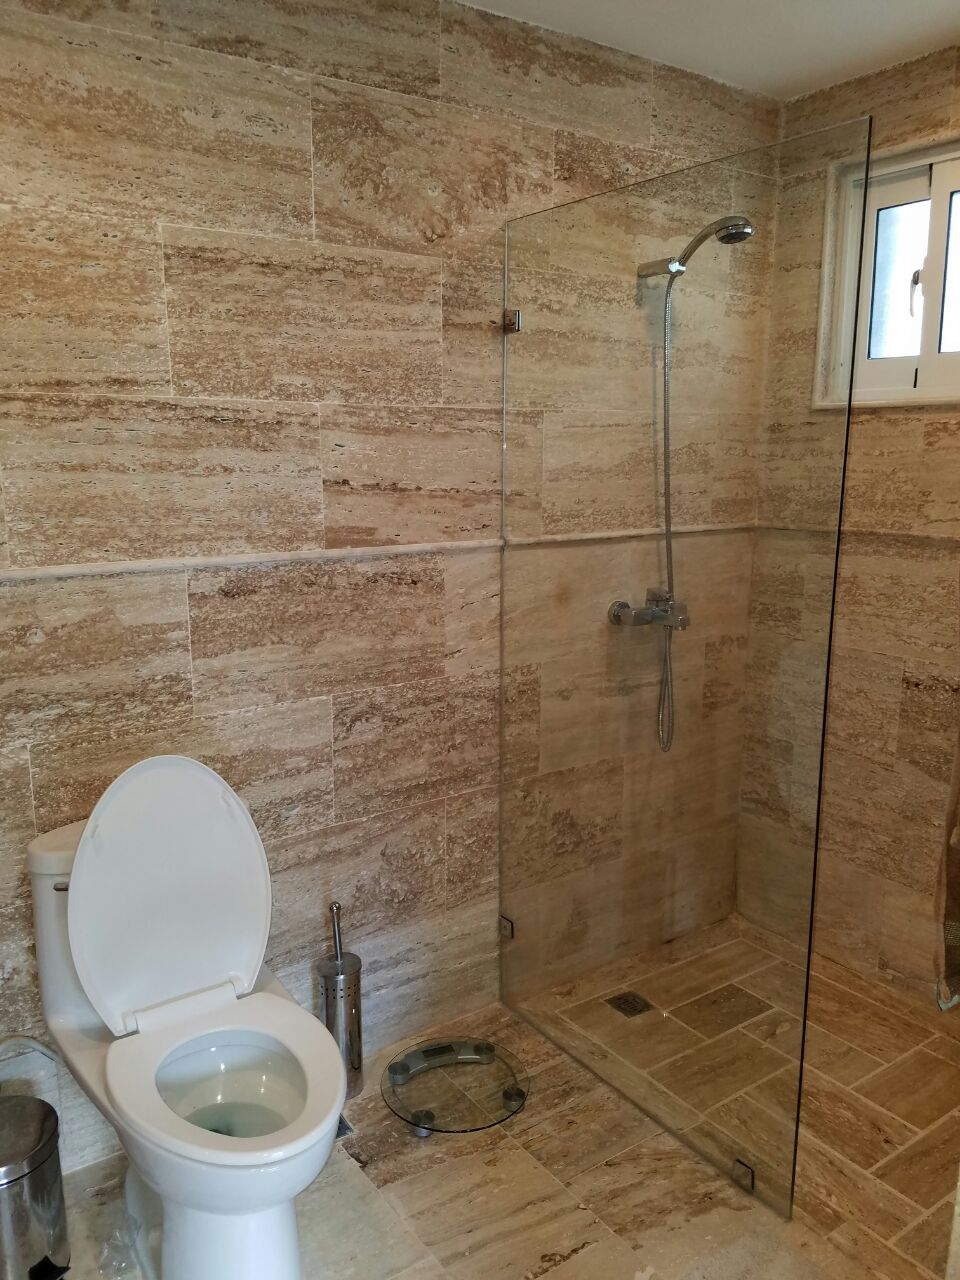 Apartment for sale las terrenas monserrat II  bathroom 1.jpeg